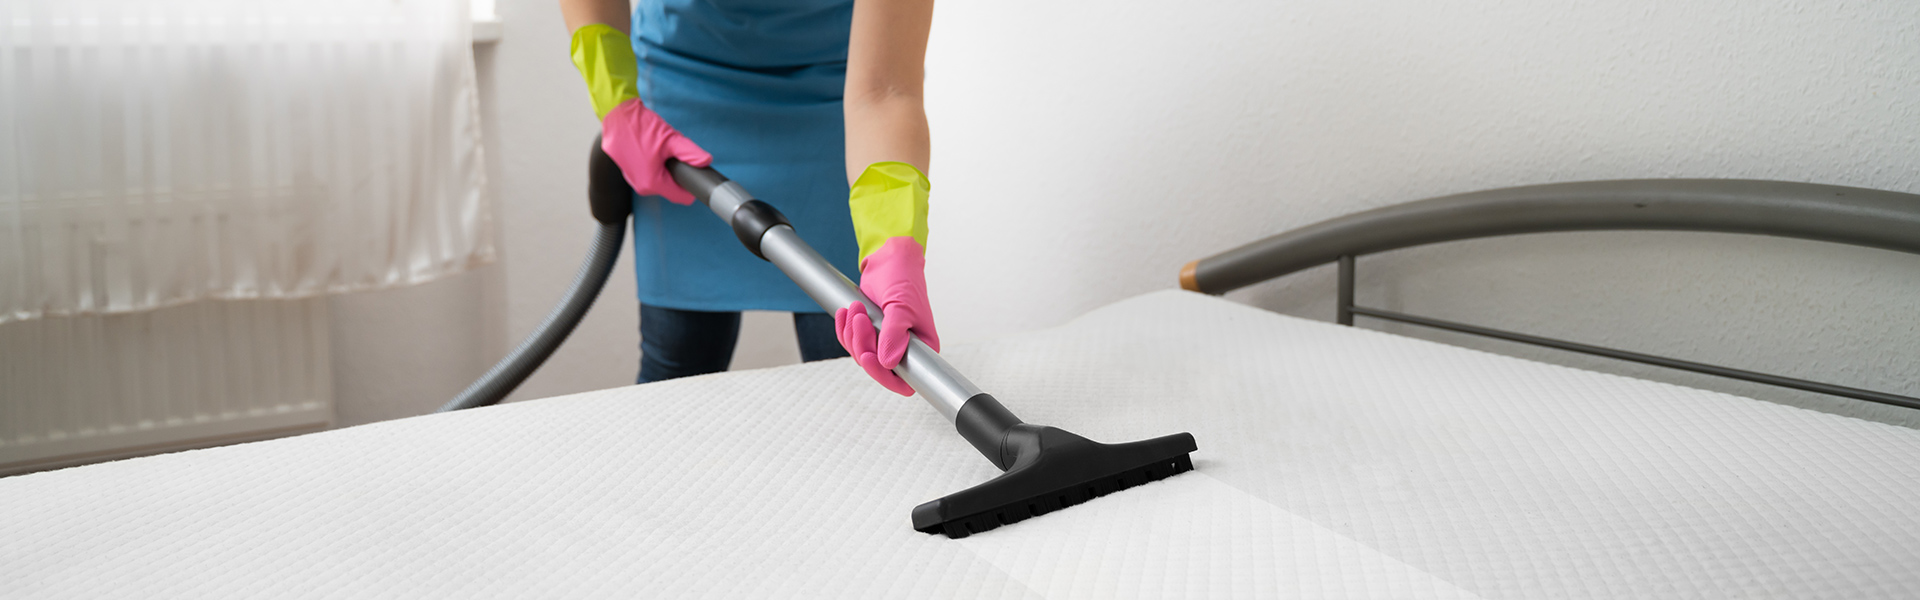 Cleaning Your UrbanBed Mattress in 8 Steps